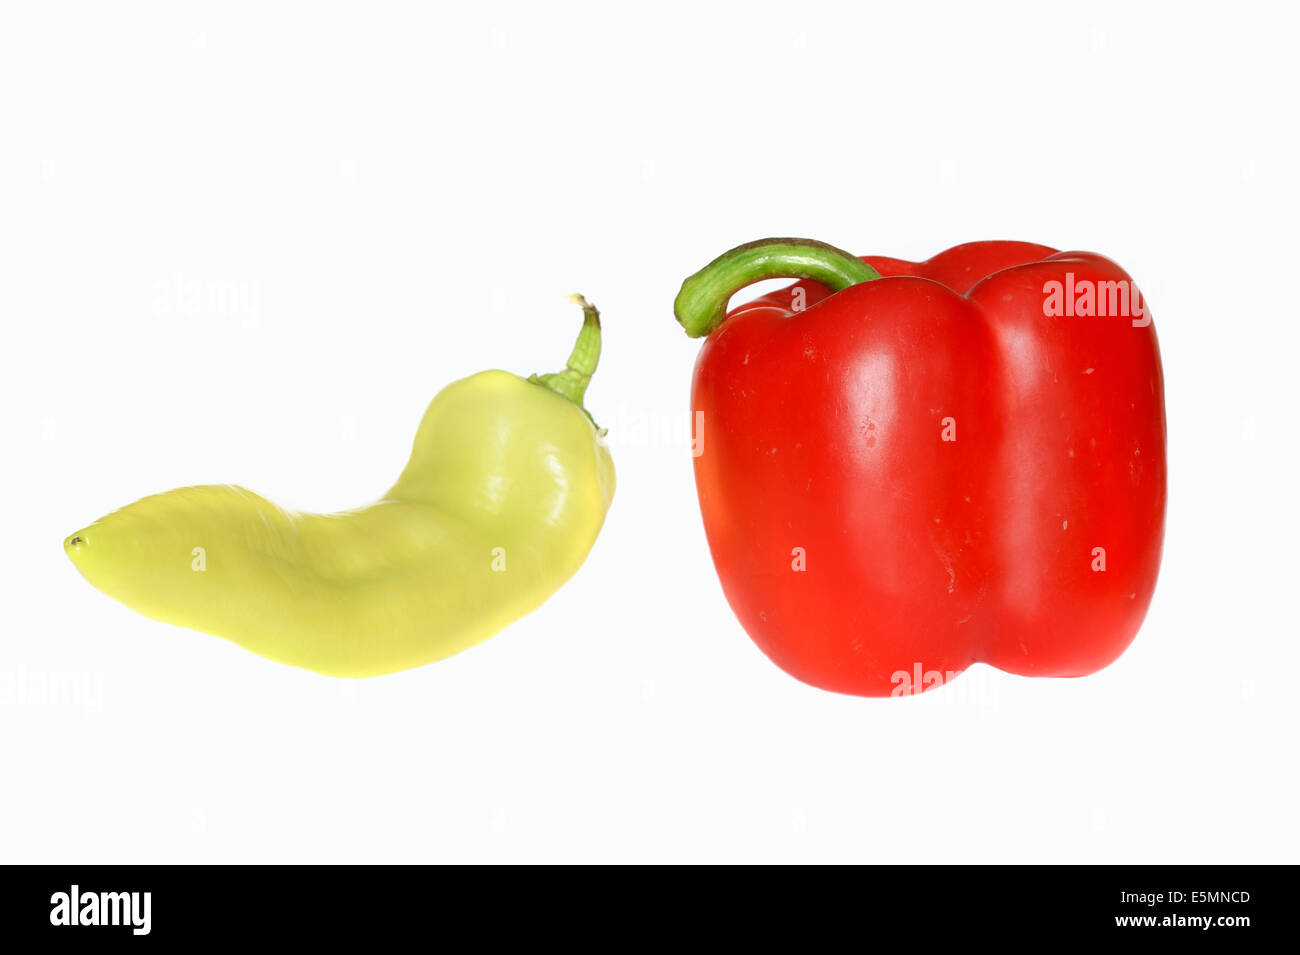 Red and green Pepper fruits (Capsicum annuum) - Stock Image